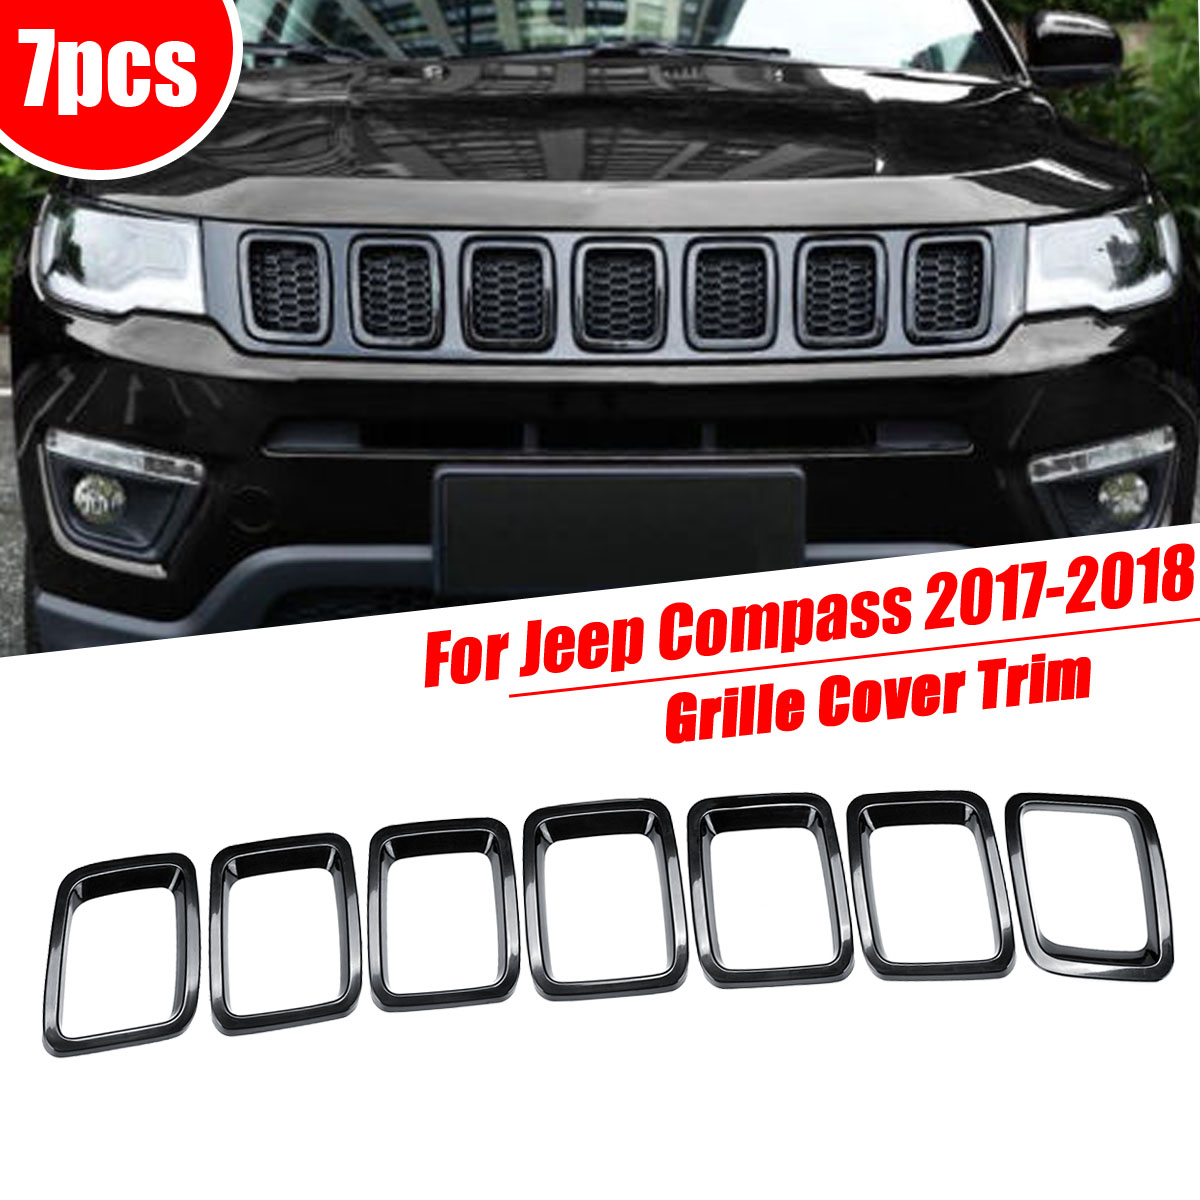 For Jeep For Compass 2017 2018 Chrome ABS Car Front Grille Bumpers Protectors Cover Trim Car Front Bar Grille Cover Car-styling